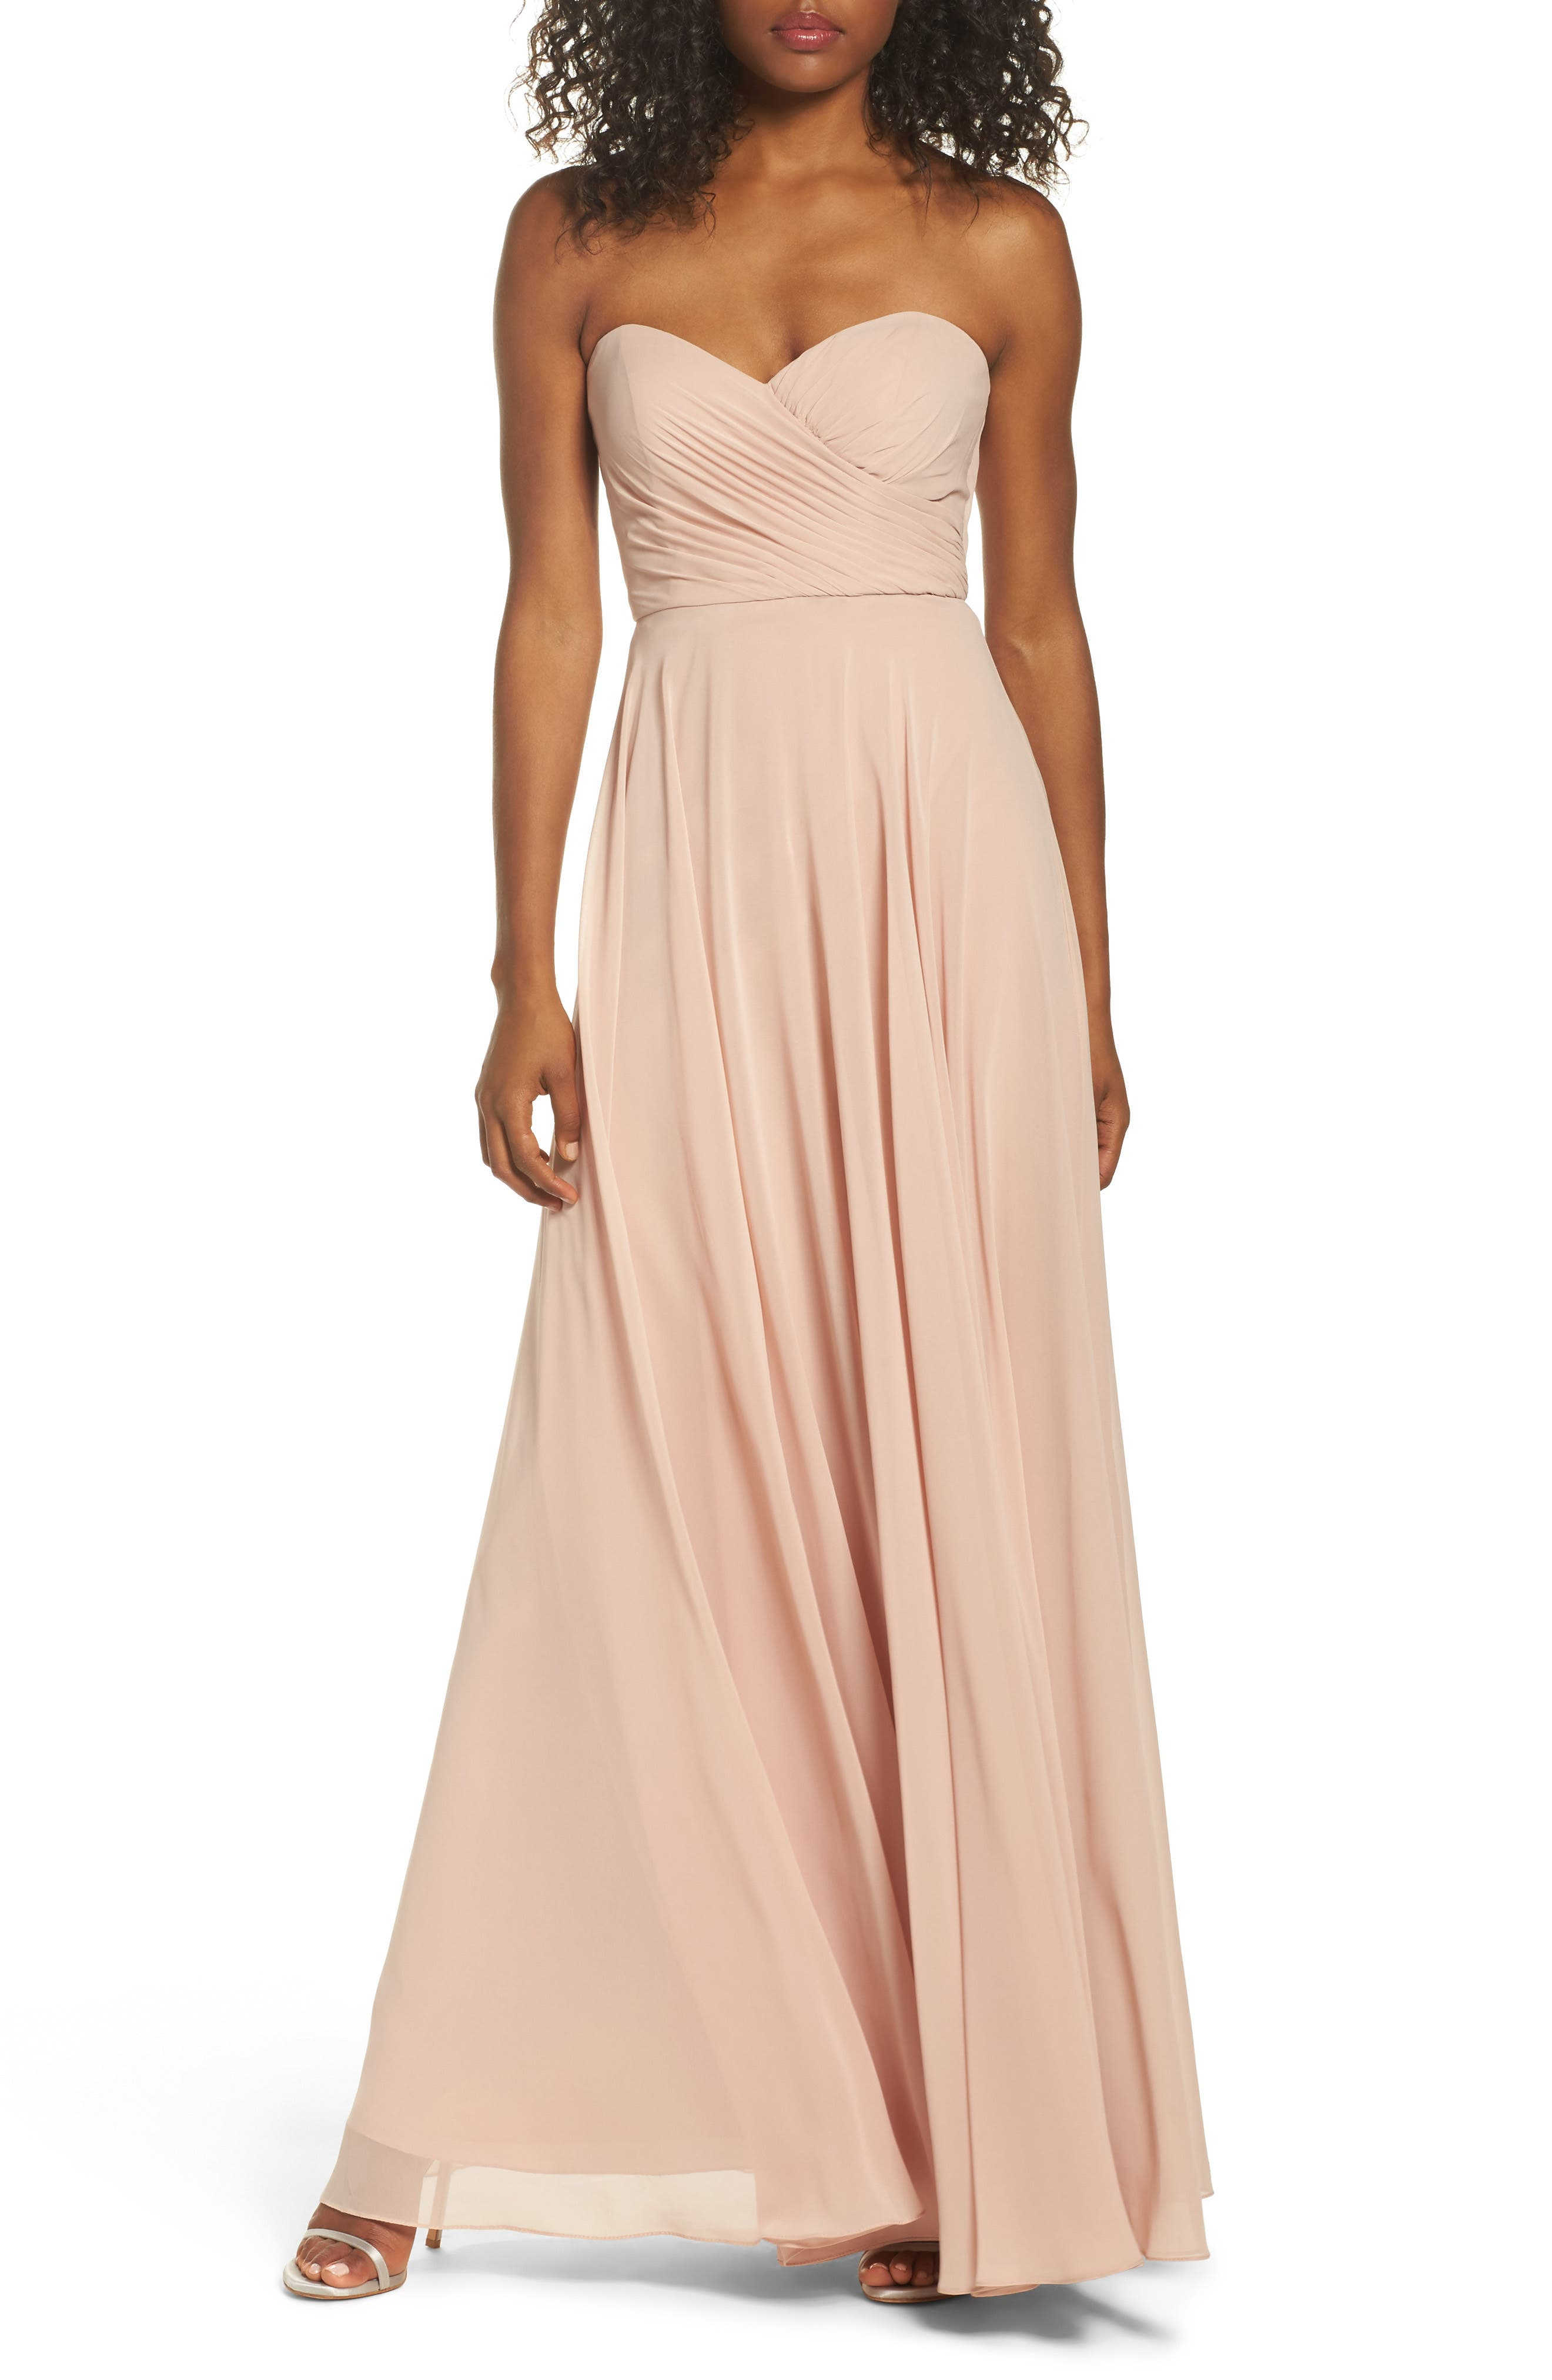 Adeline Strapless Chiffon Gown,                             Main thumbnail 1, color,                             Desert Rose